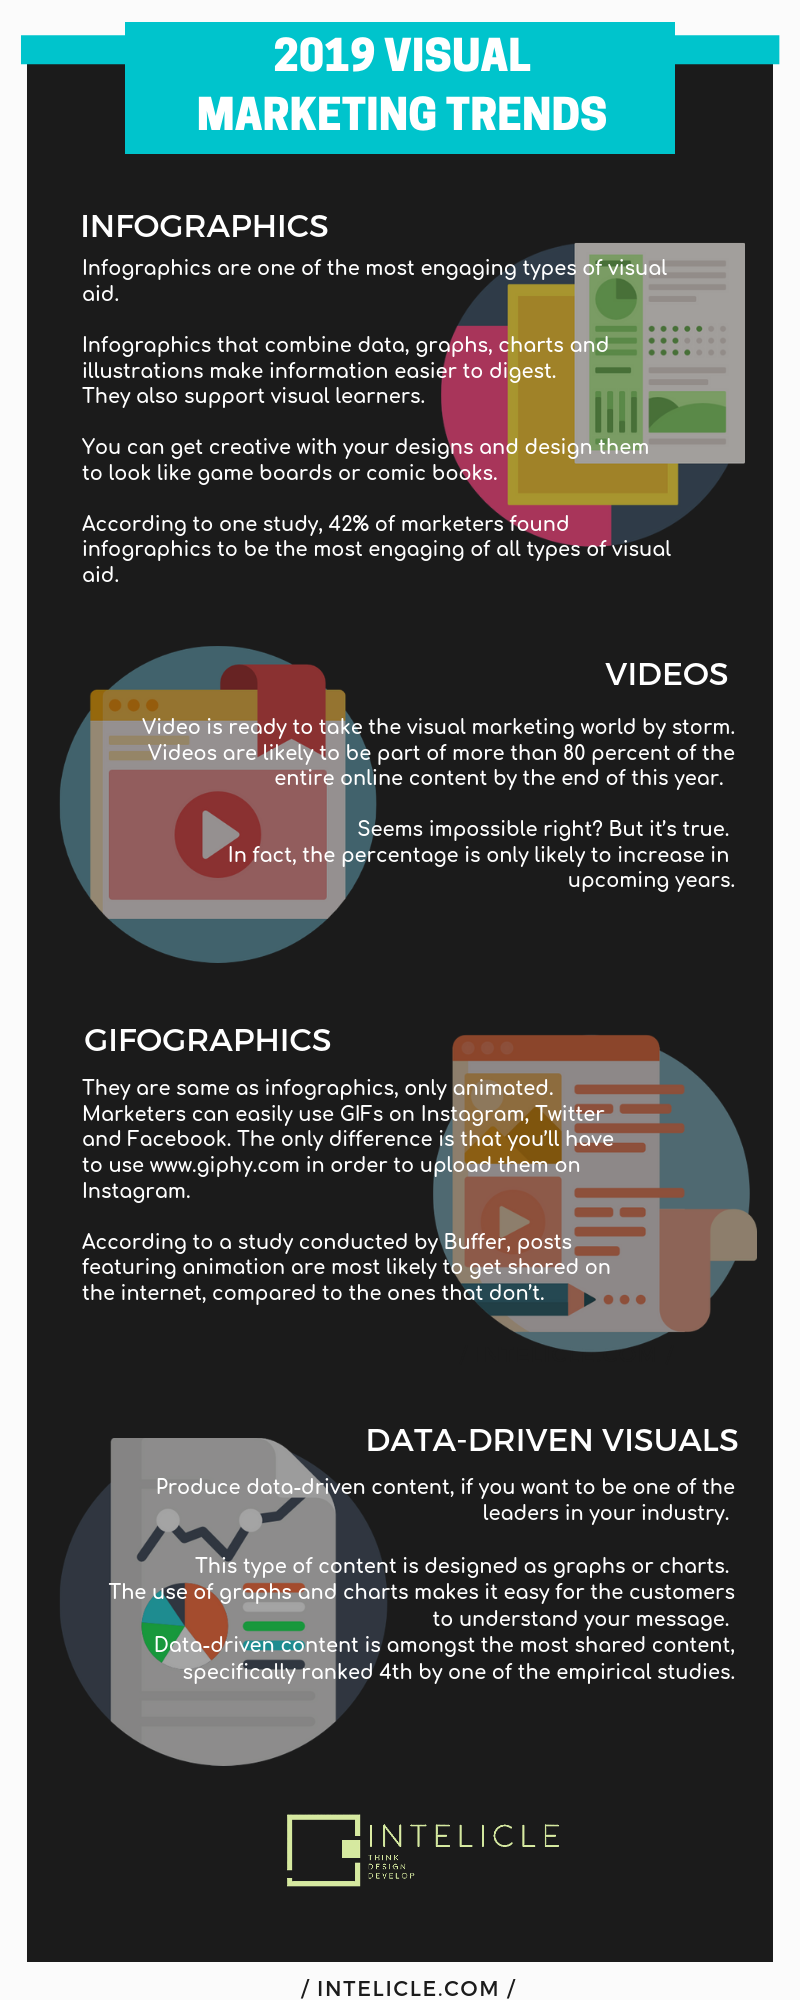 visual marketing trends